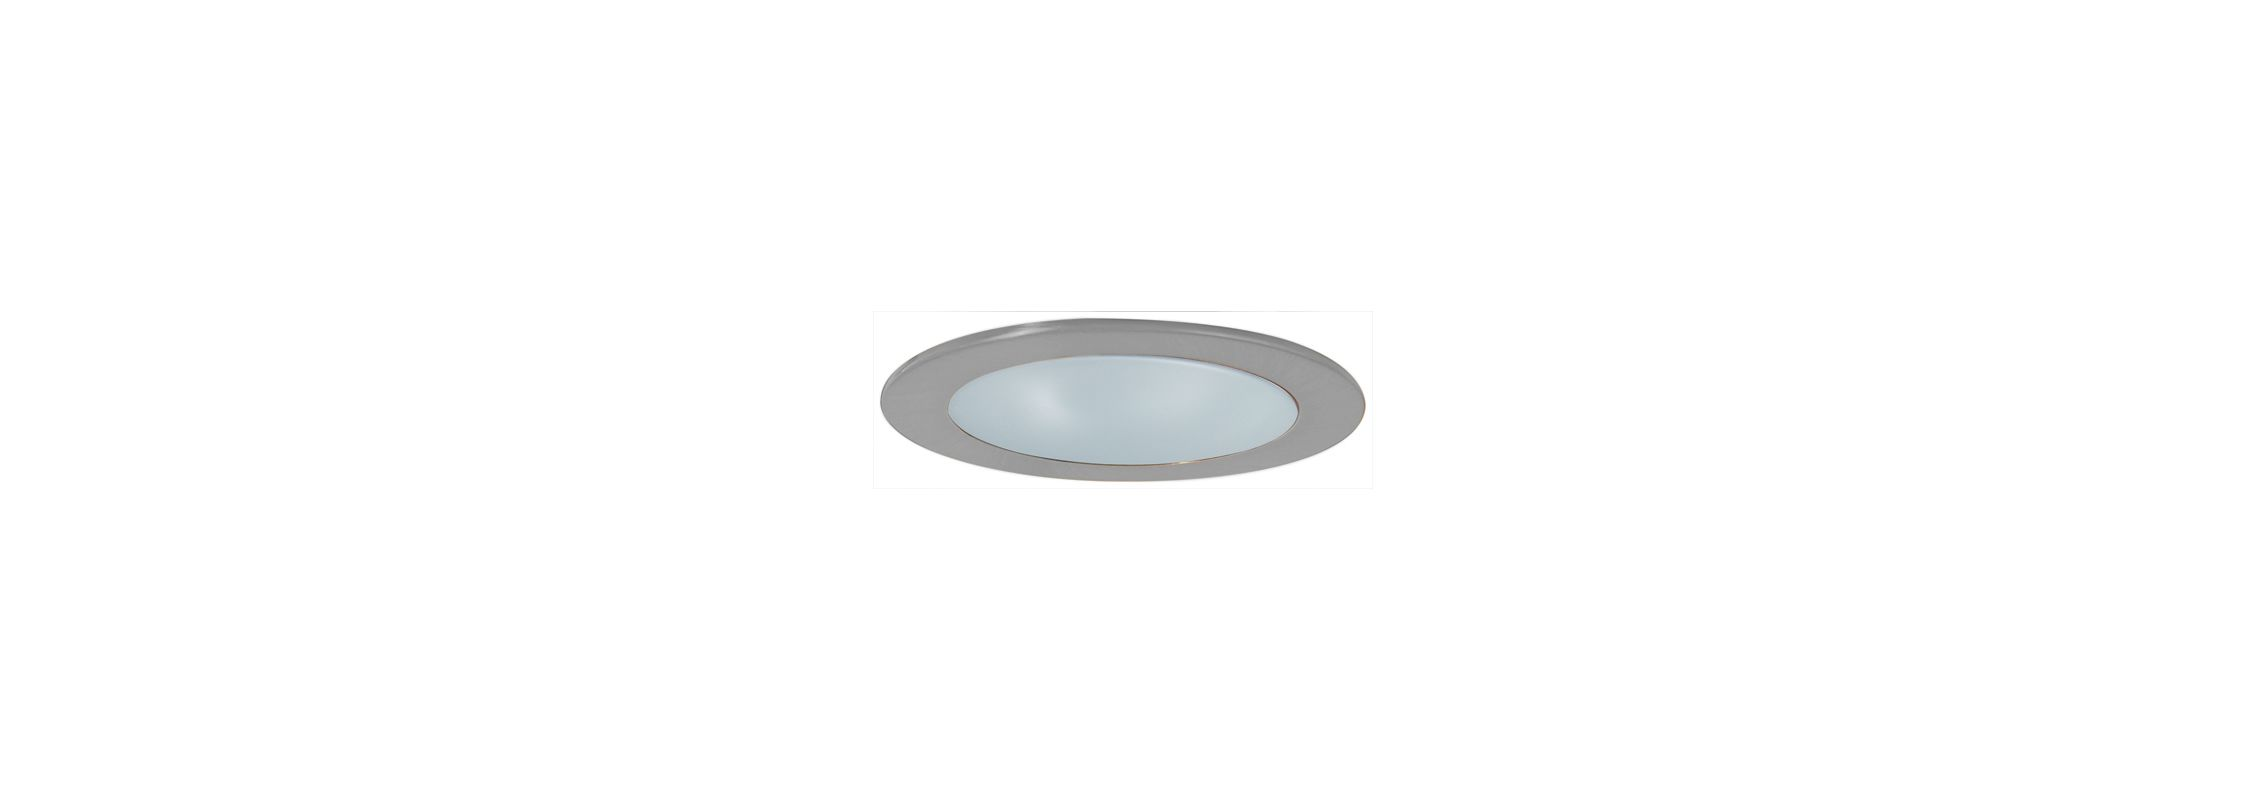 "Elco EL9112 4"" CFL Shower Trim with Frosted Lens and Reflector Clear"